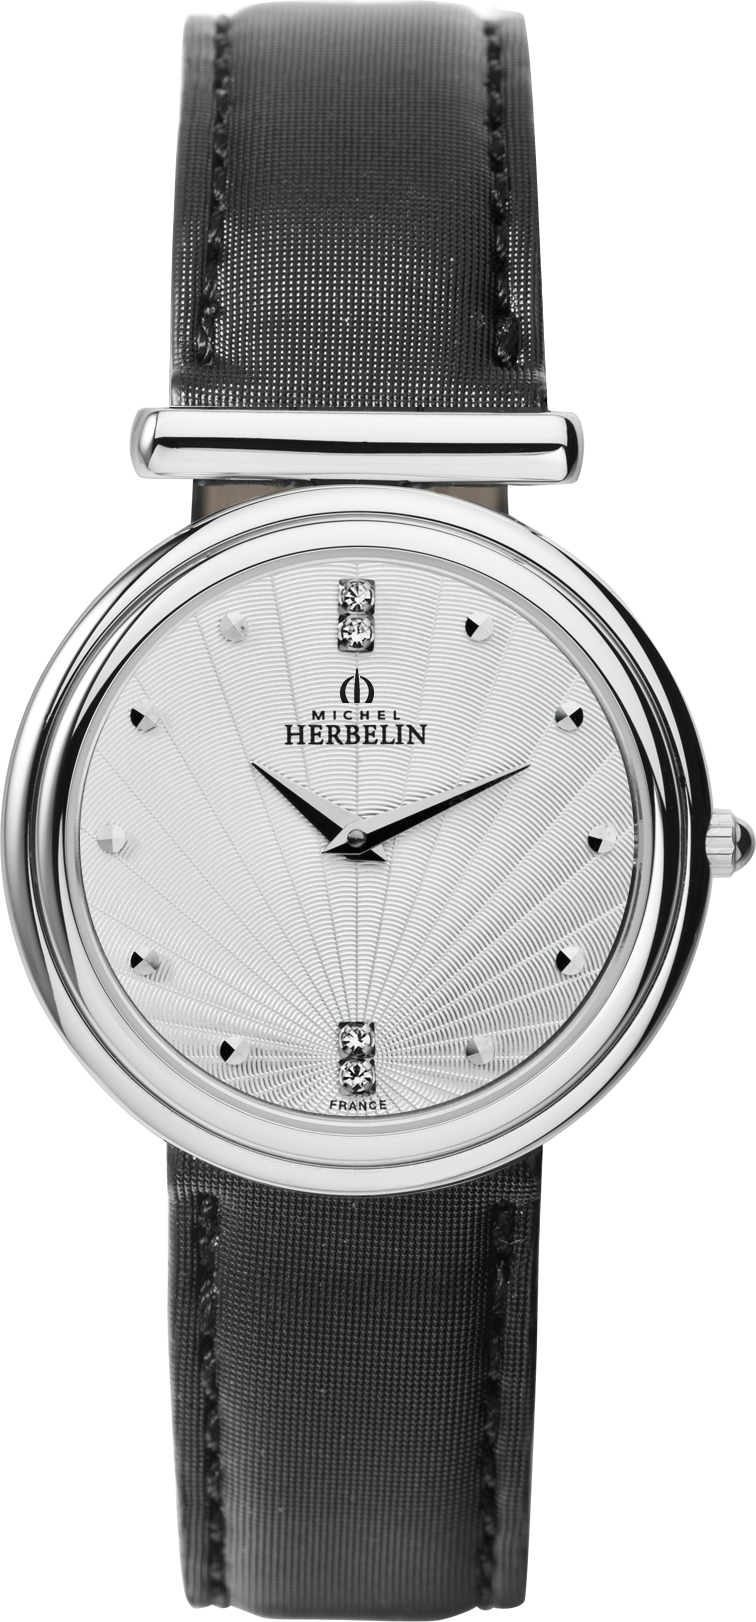 67483 - Michel Herbelin Small sized Slimline Strap Watch